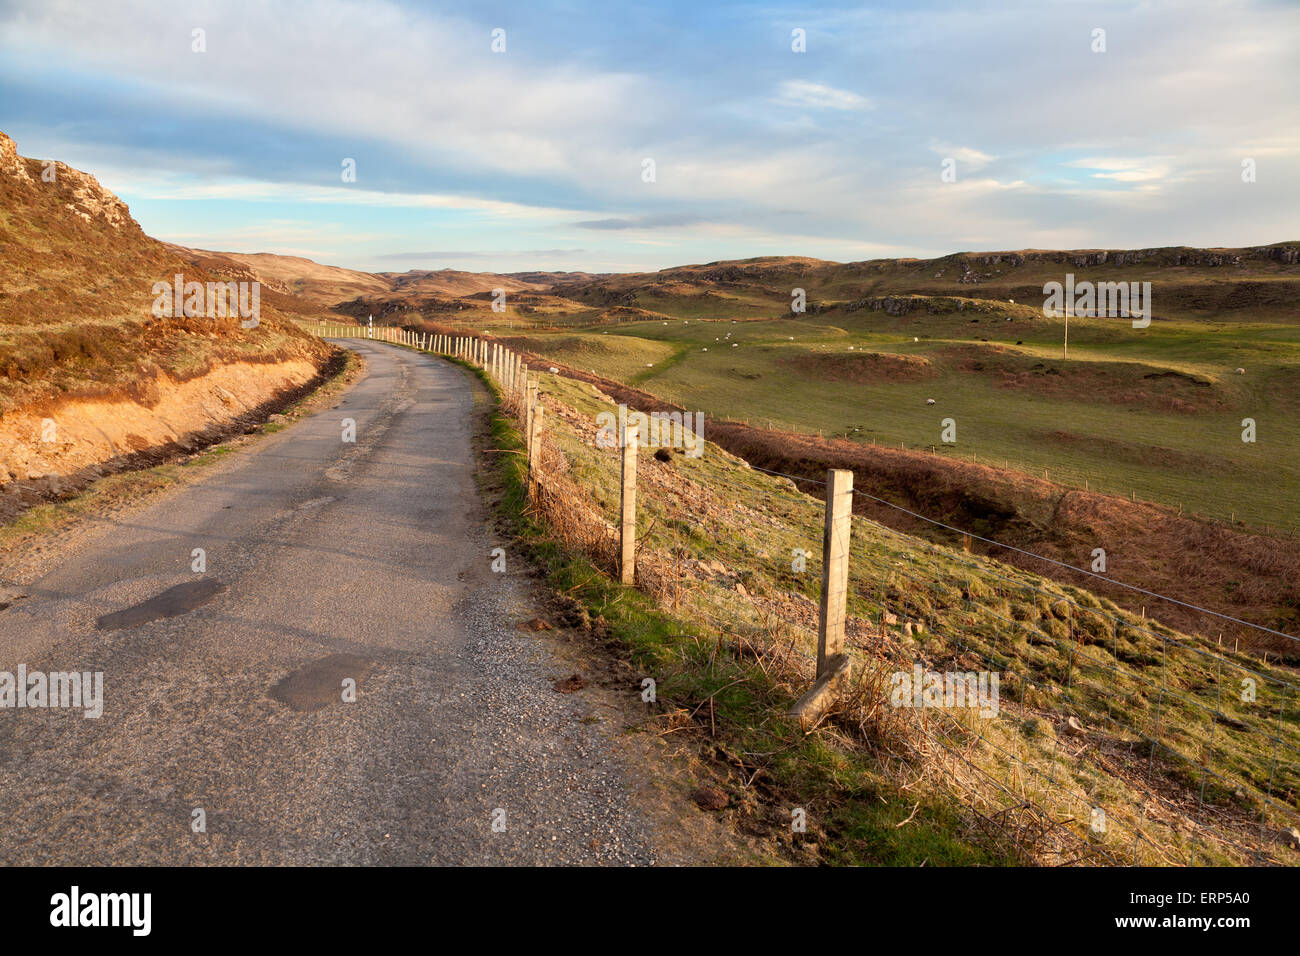 Road running through Isle of Mull, Inner Hebrides, Scotland - Stock Image